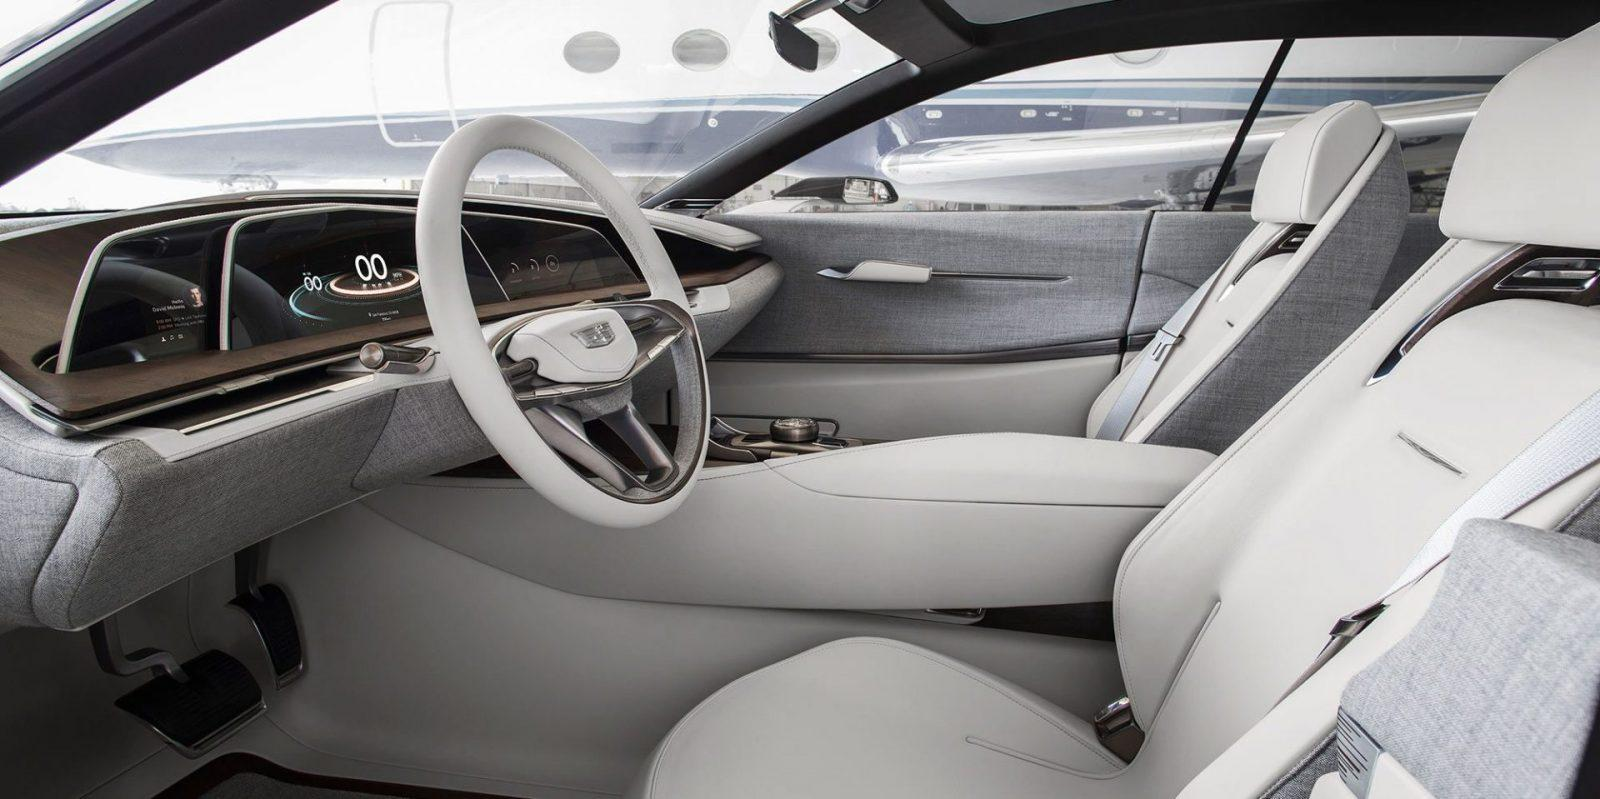 Cadillac chief designer wants brand's EVs to be 'unlike anything else'